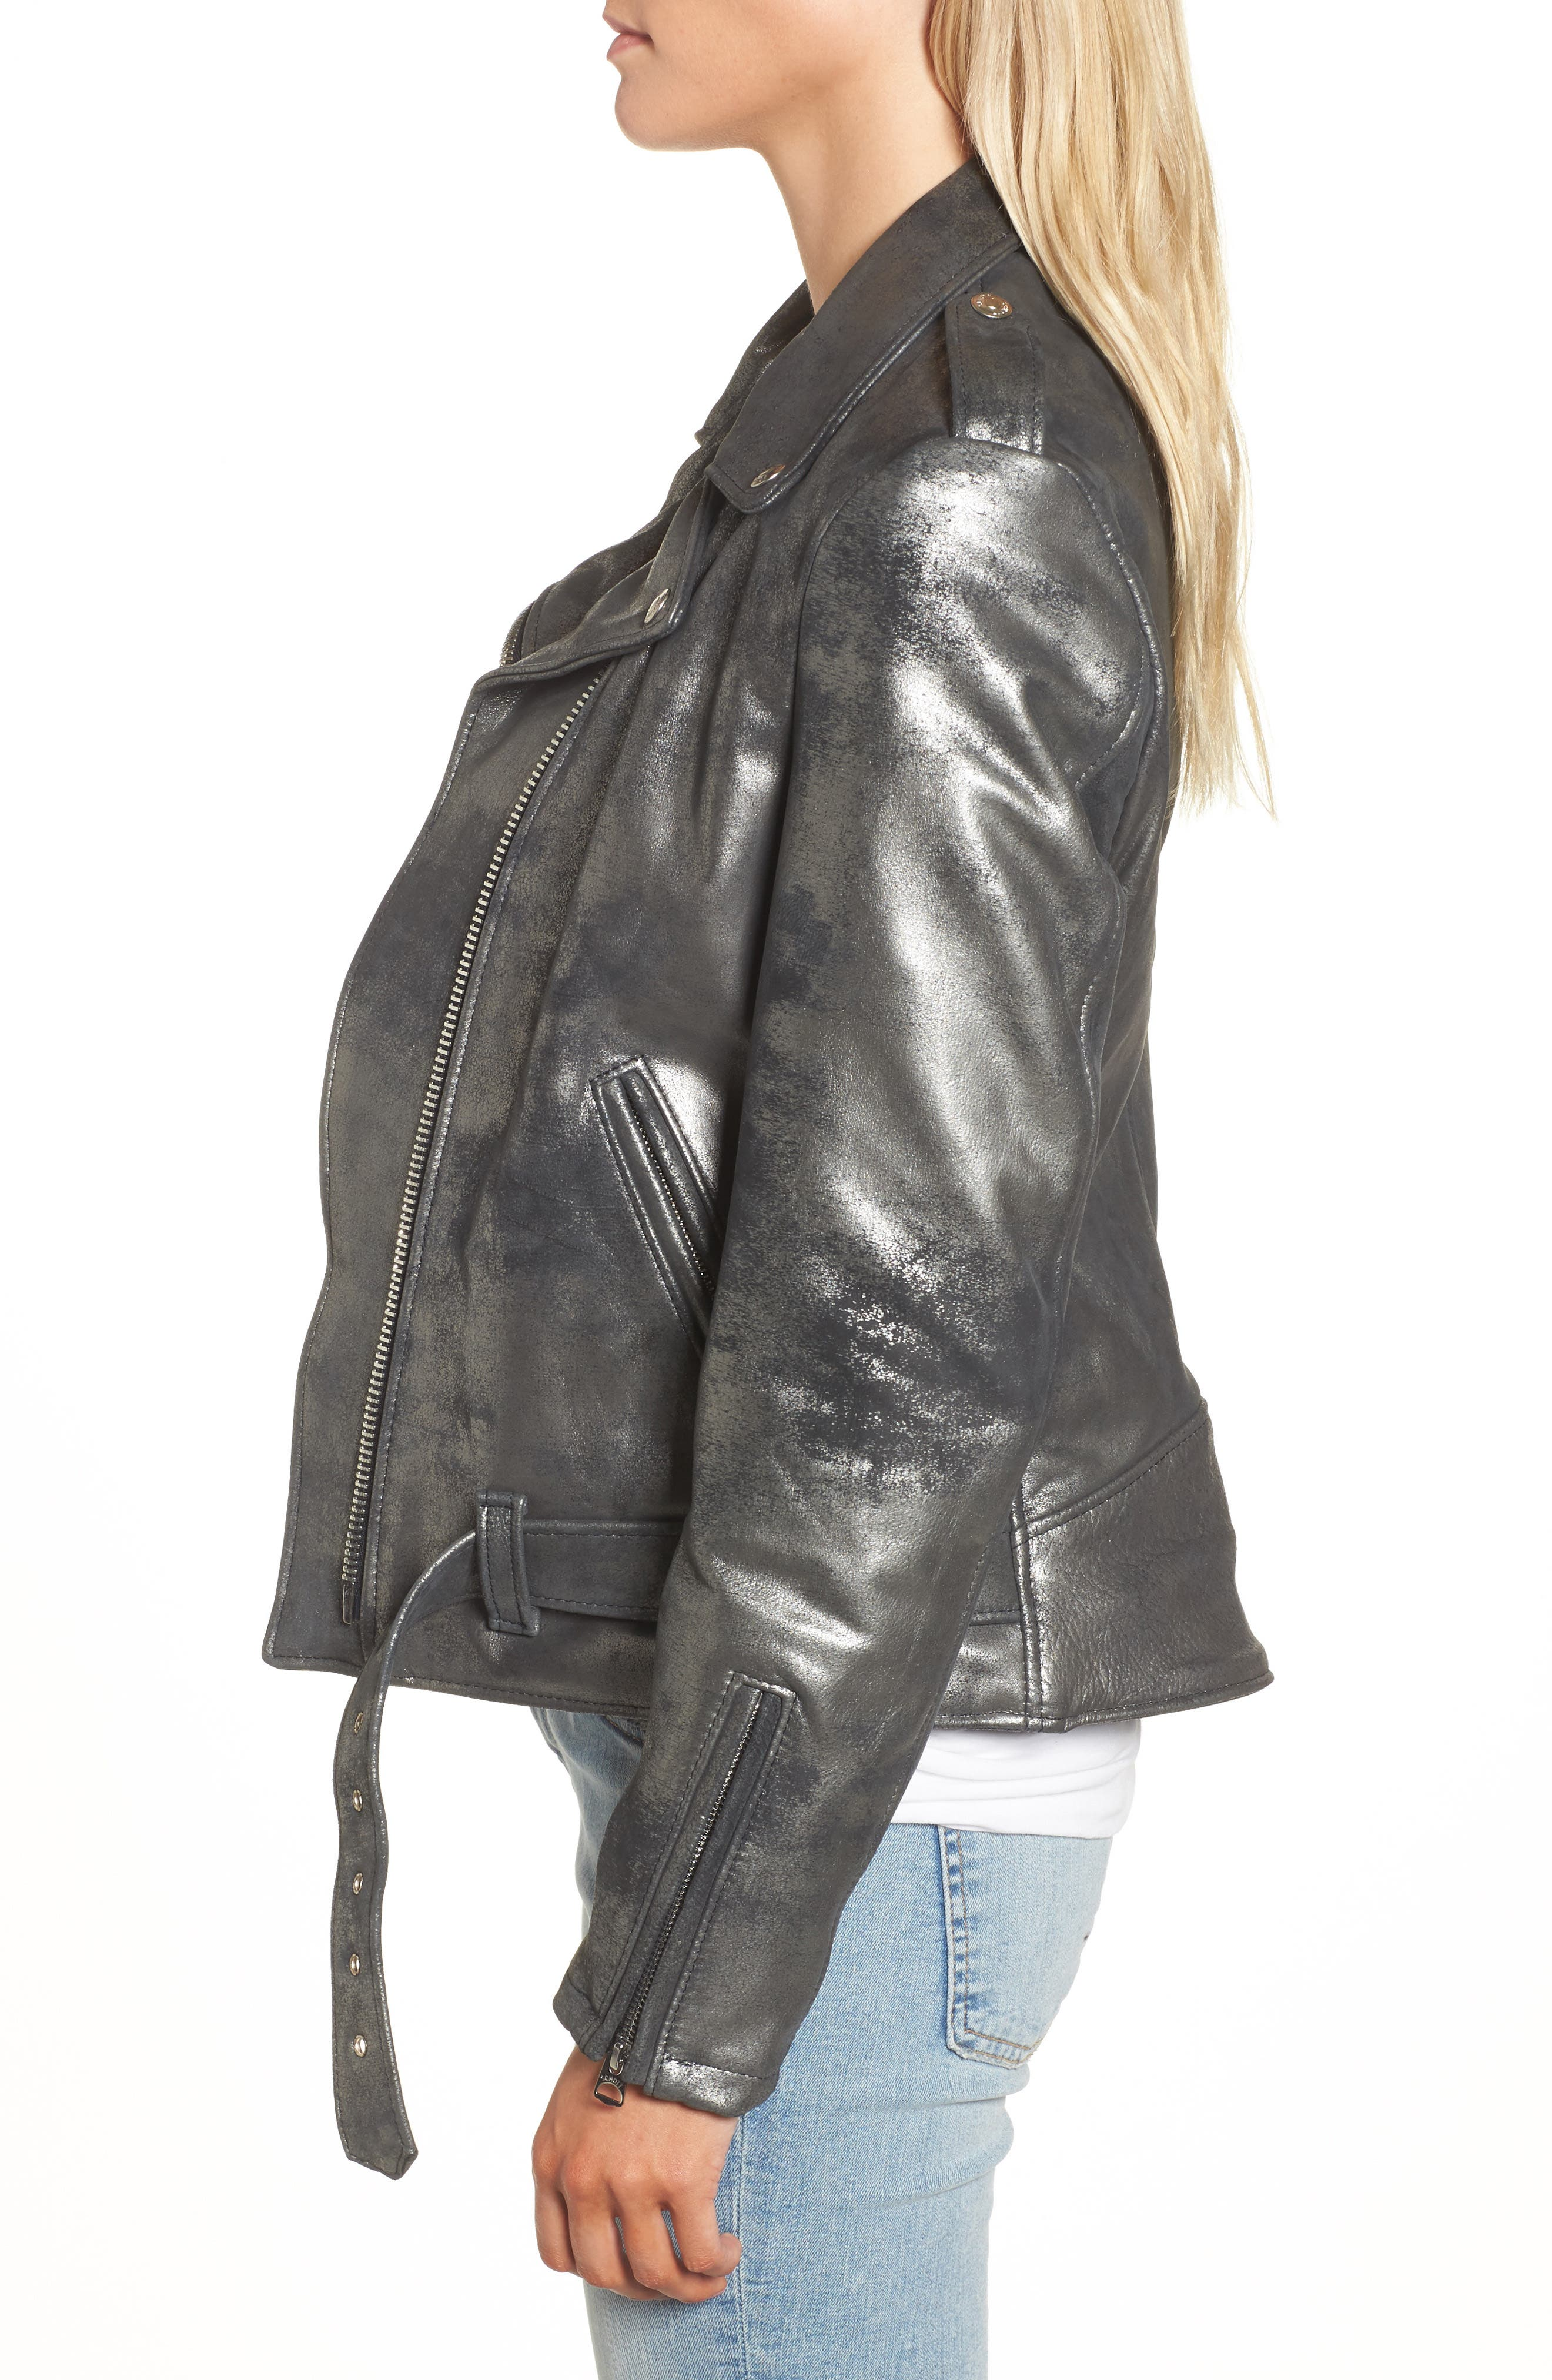 Perfecto Distressed Leather Boyfriend Jacket,                             Alternate thumbnail 3, color,                             Graphite